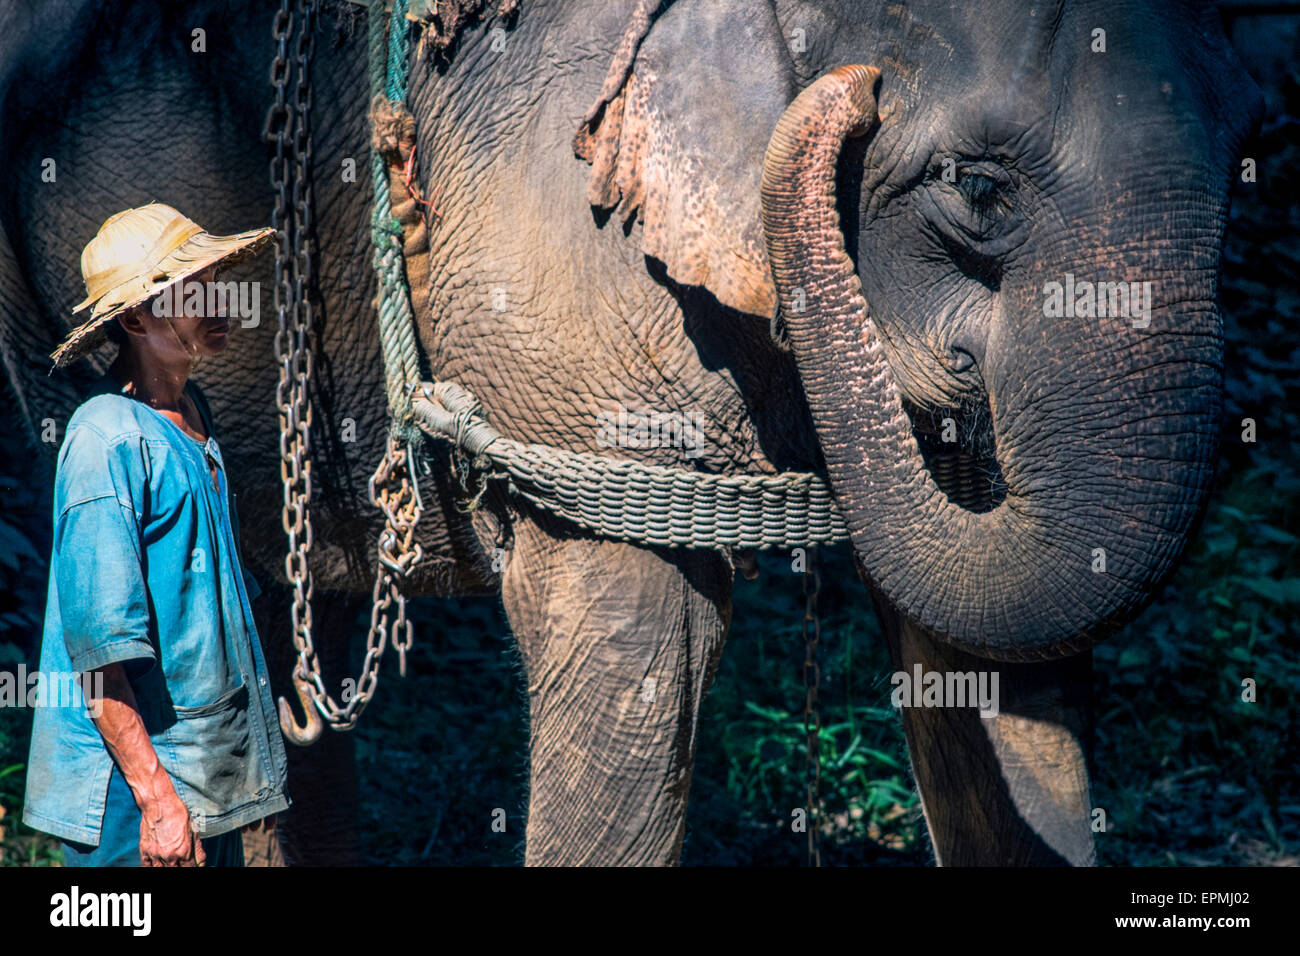 Asia. Thailand, Chiang Dao. Elephant center. Mahout and his elephant. - Stock Image